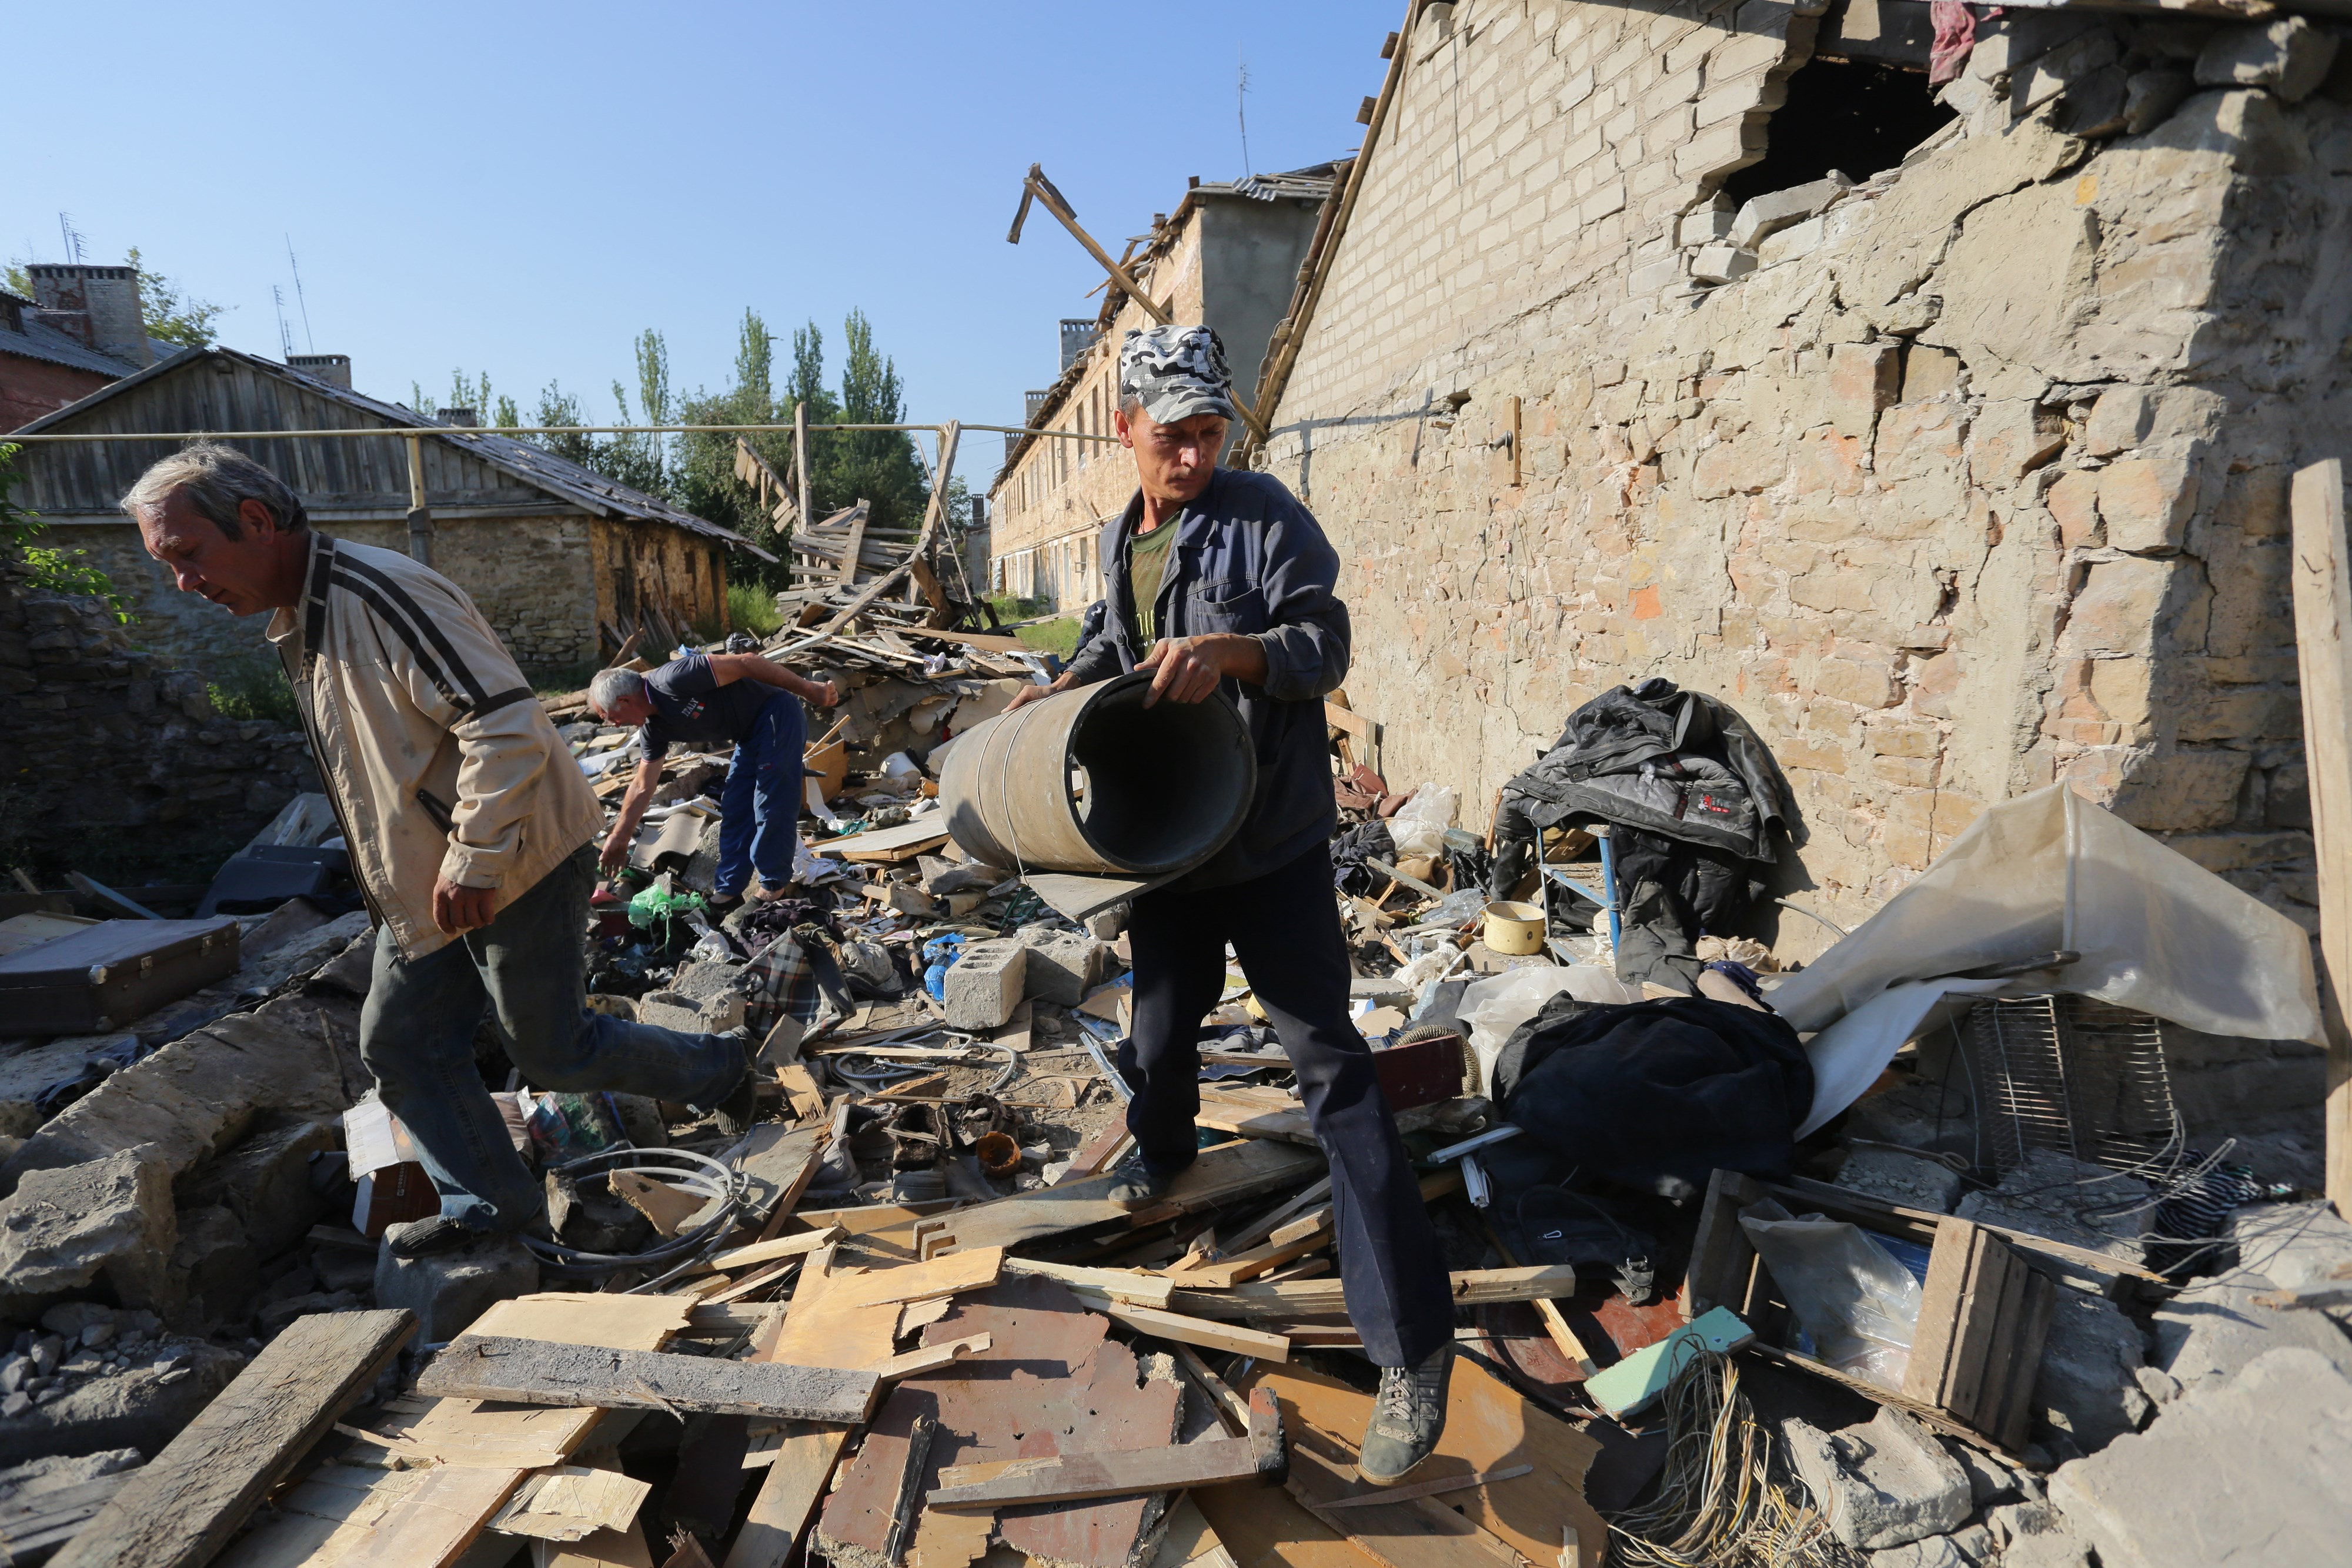 Residents clean up the debris of their destroyed house after shelling between Ukrainian forces and pro-Russian separatists on August 10, 2015 in Golmovsky village, Donetsk region.